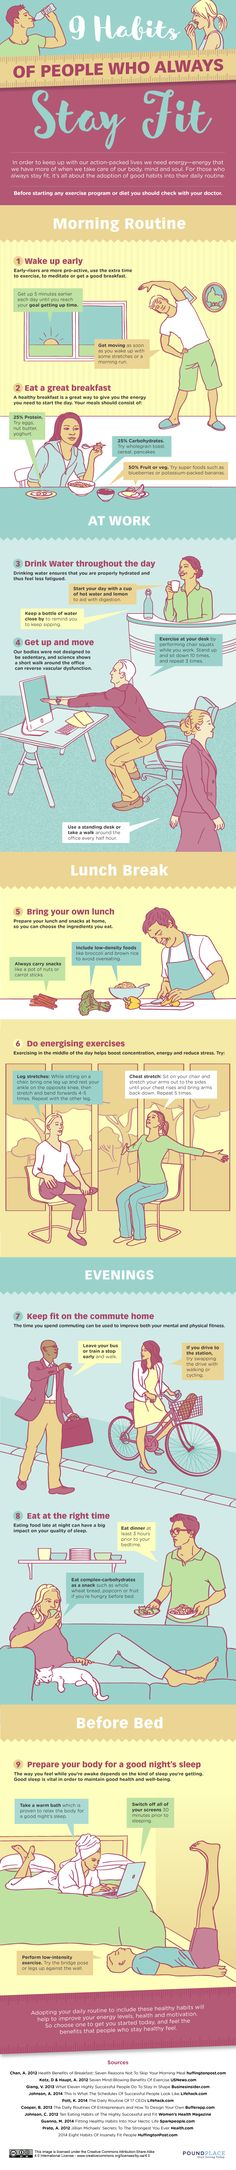 Get the top 9 habits of people who always stay fit in this fun infographic! Fitness tips health tips to help you live healthier.